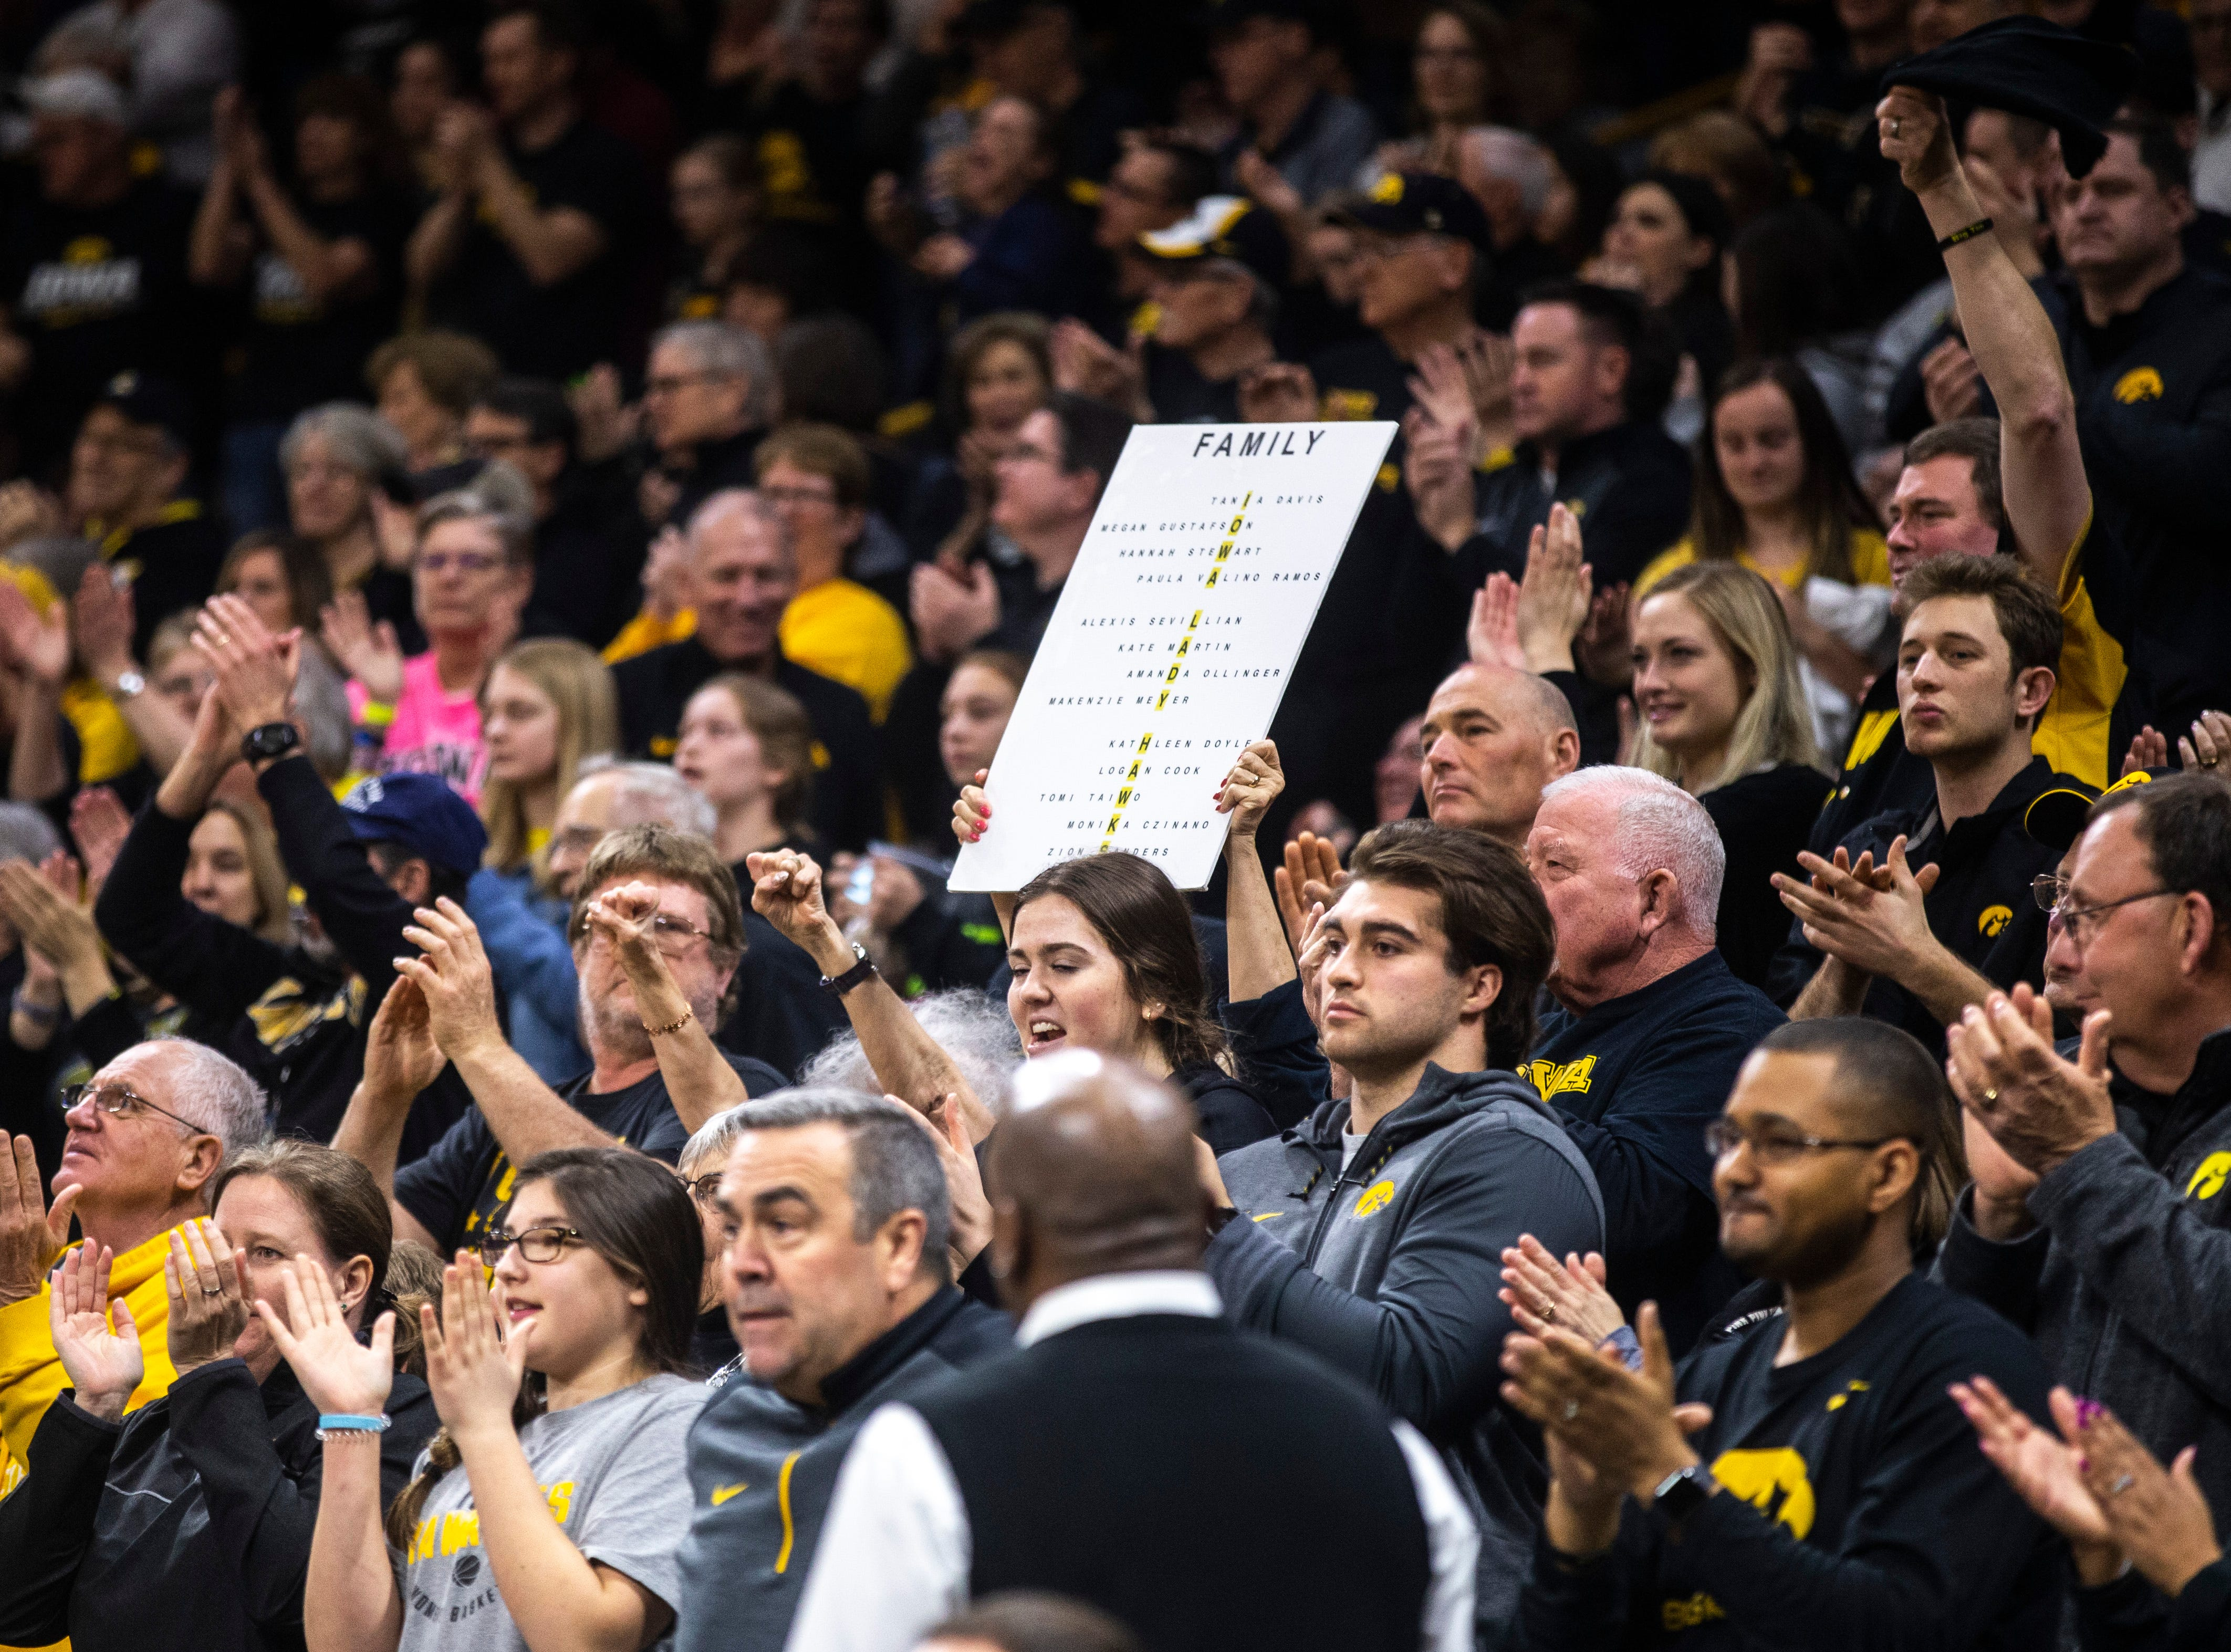 Iowa Hawkeyes fans hold up a sign that spells out the names of the players on the team during a NCAA women's basketball tournament second-round game, Sunday, March 24, 2019, at Carver-Hawkeye Arena in Iowa City, Iowa.